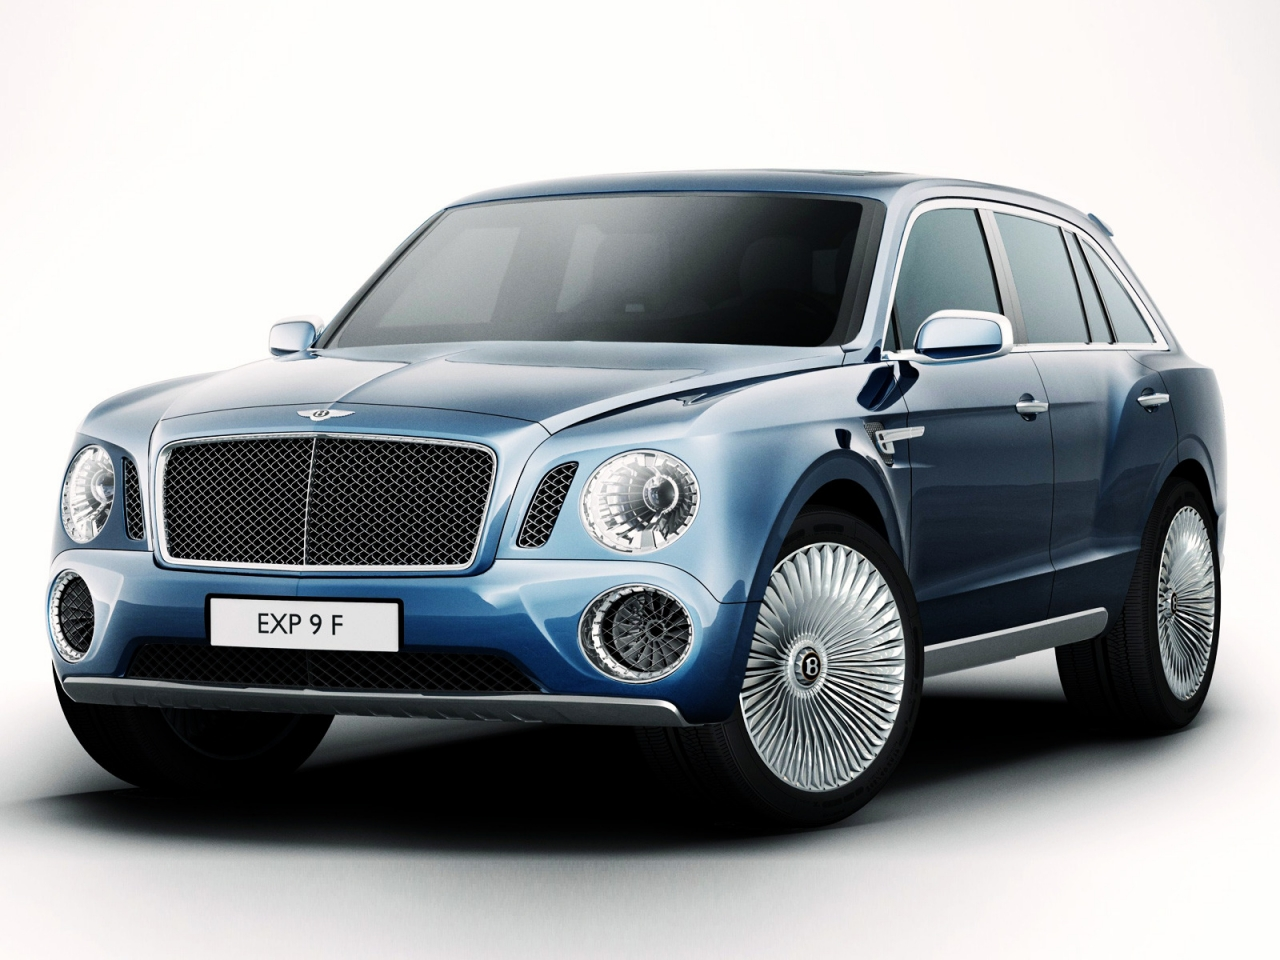 Bentley SUV 2012 Geneva for 1280 x 960 resolution